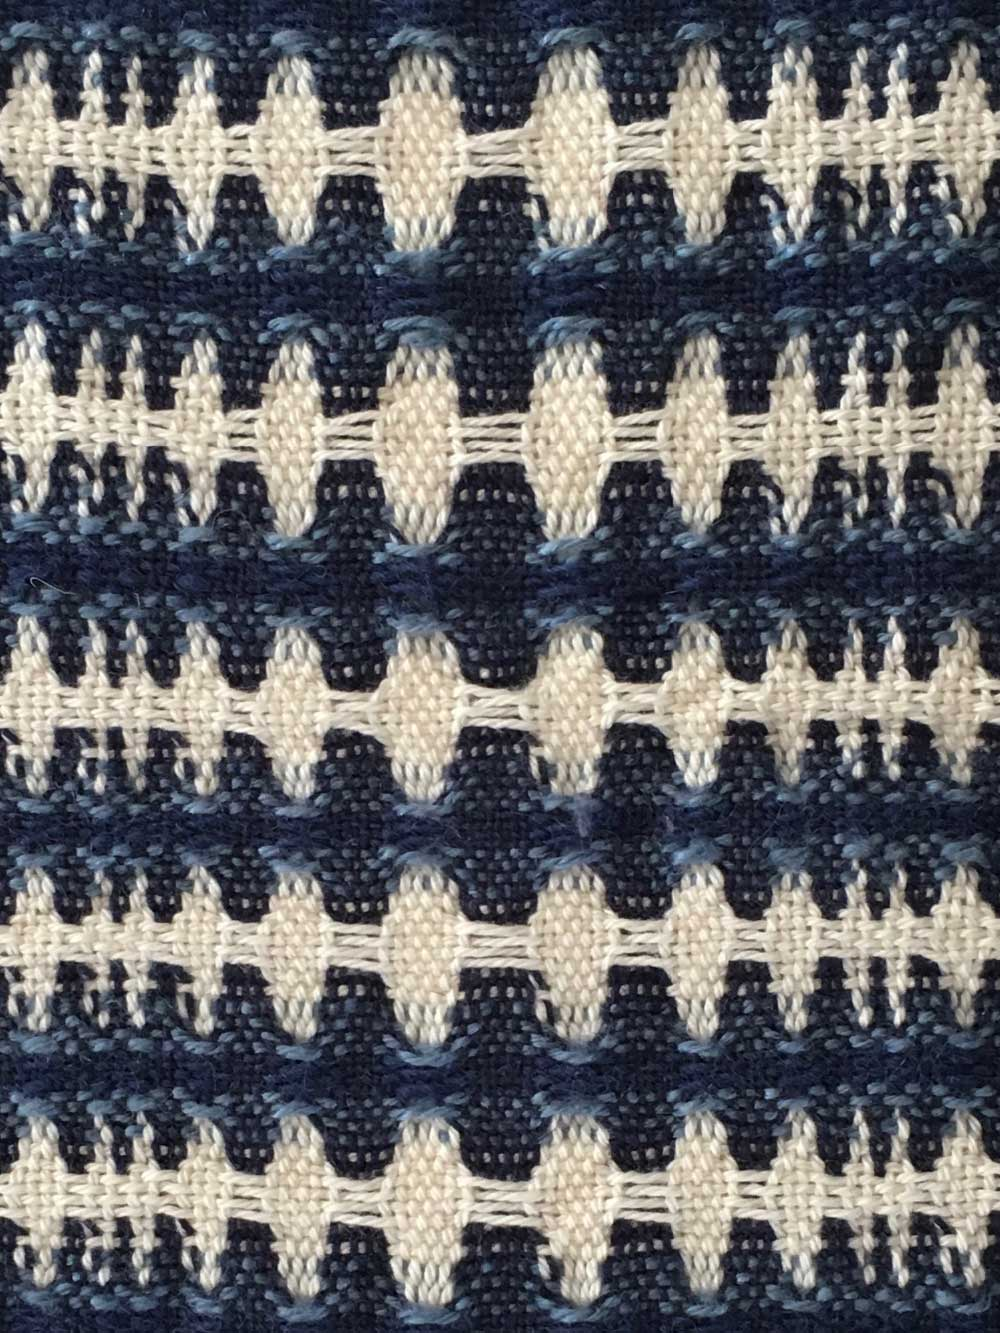 Woven Structure – Blue/white/black #1